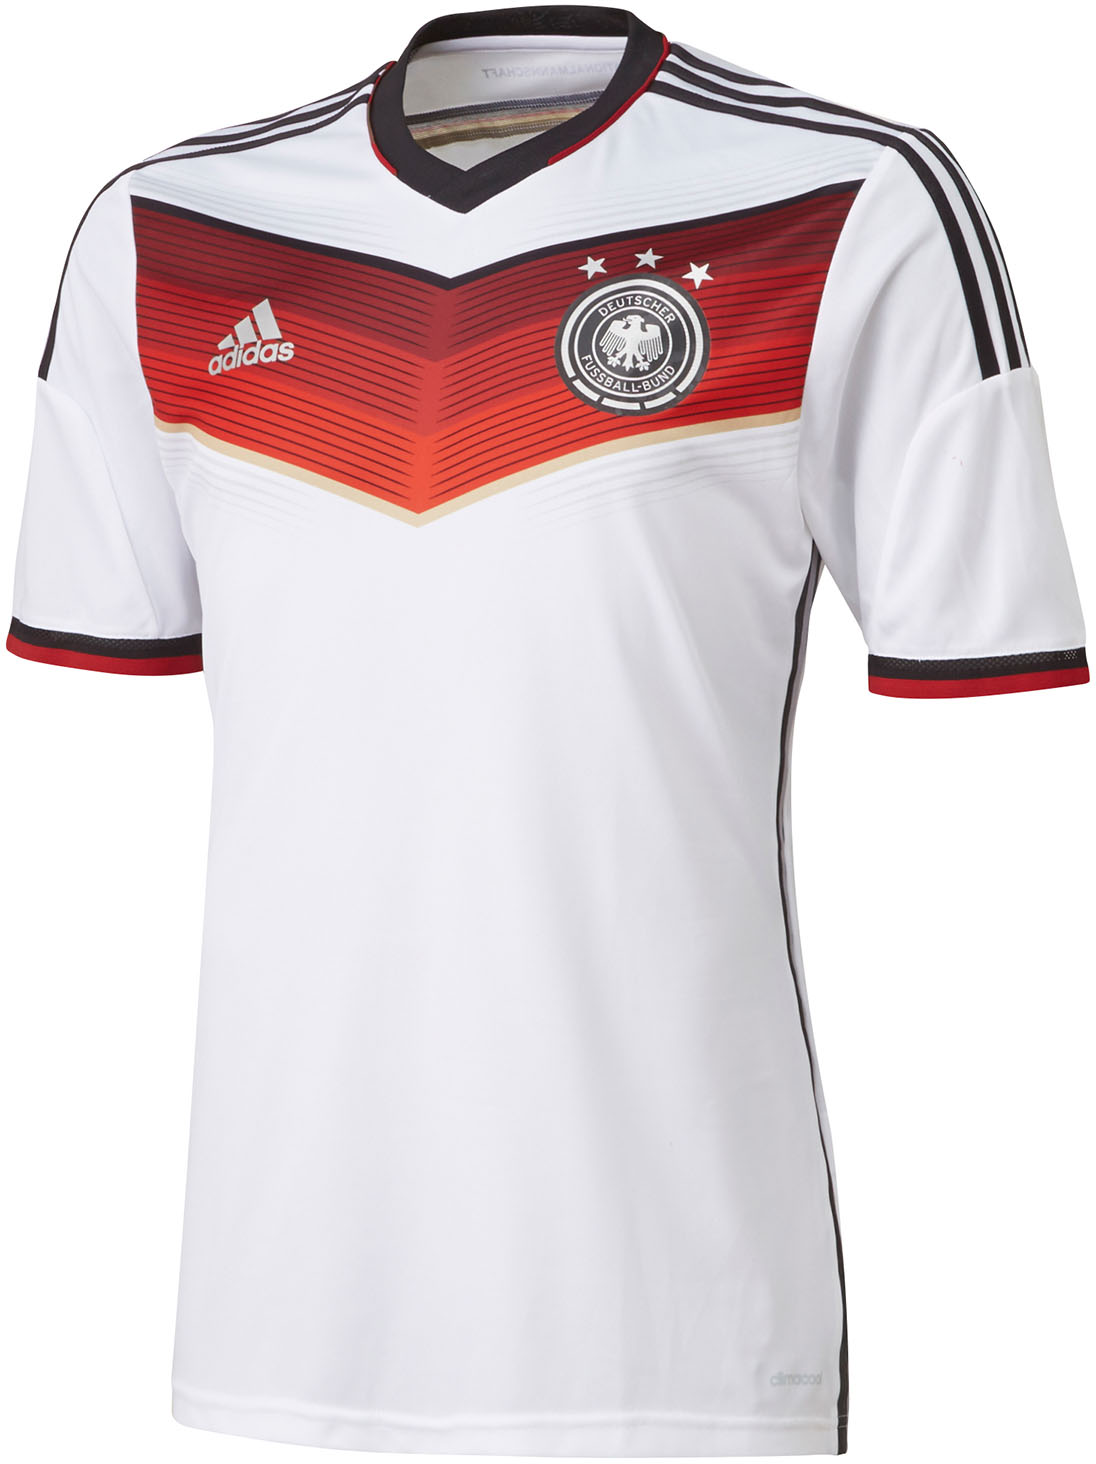 Germany 2014 World Cup Kits Unveiled